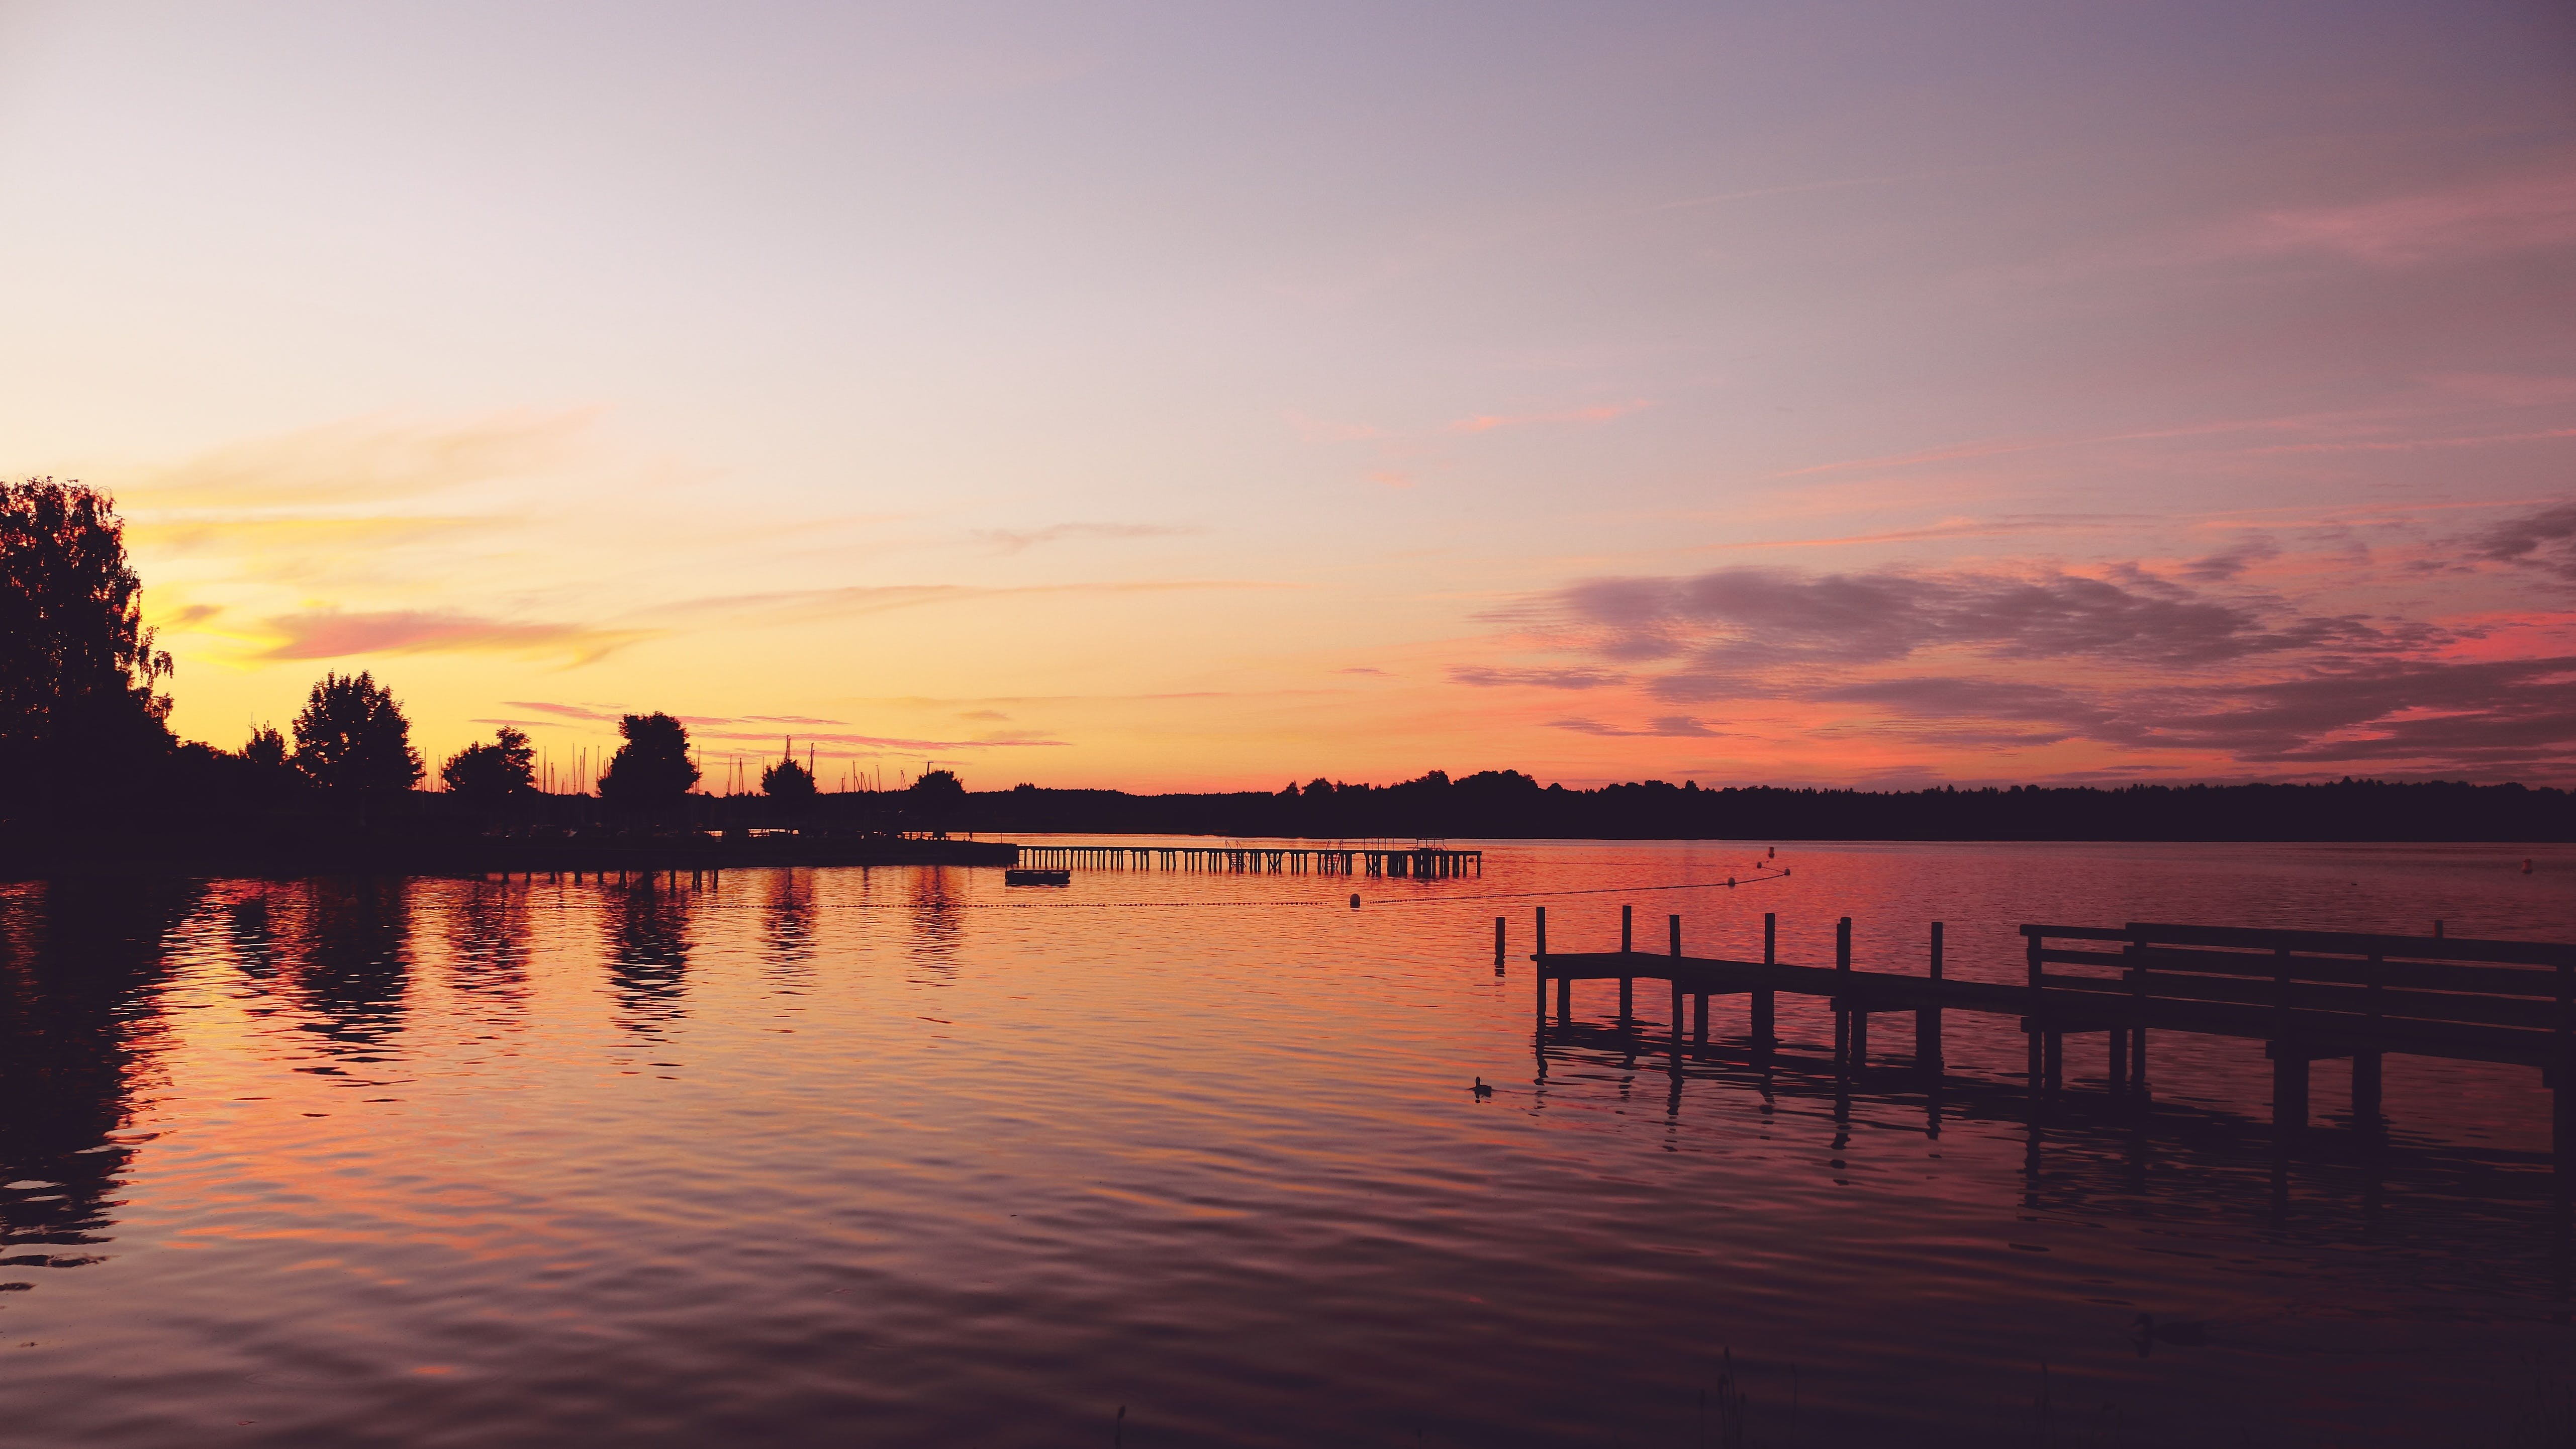 Silhouette Photography of Dock